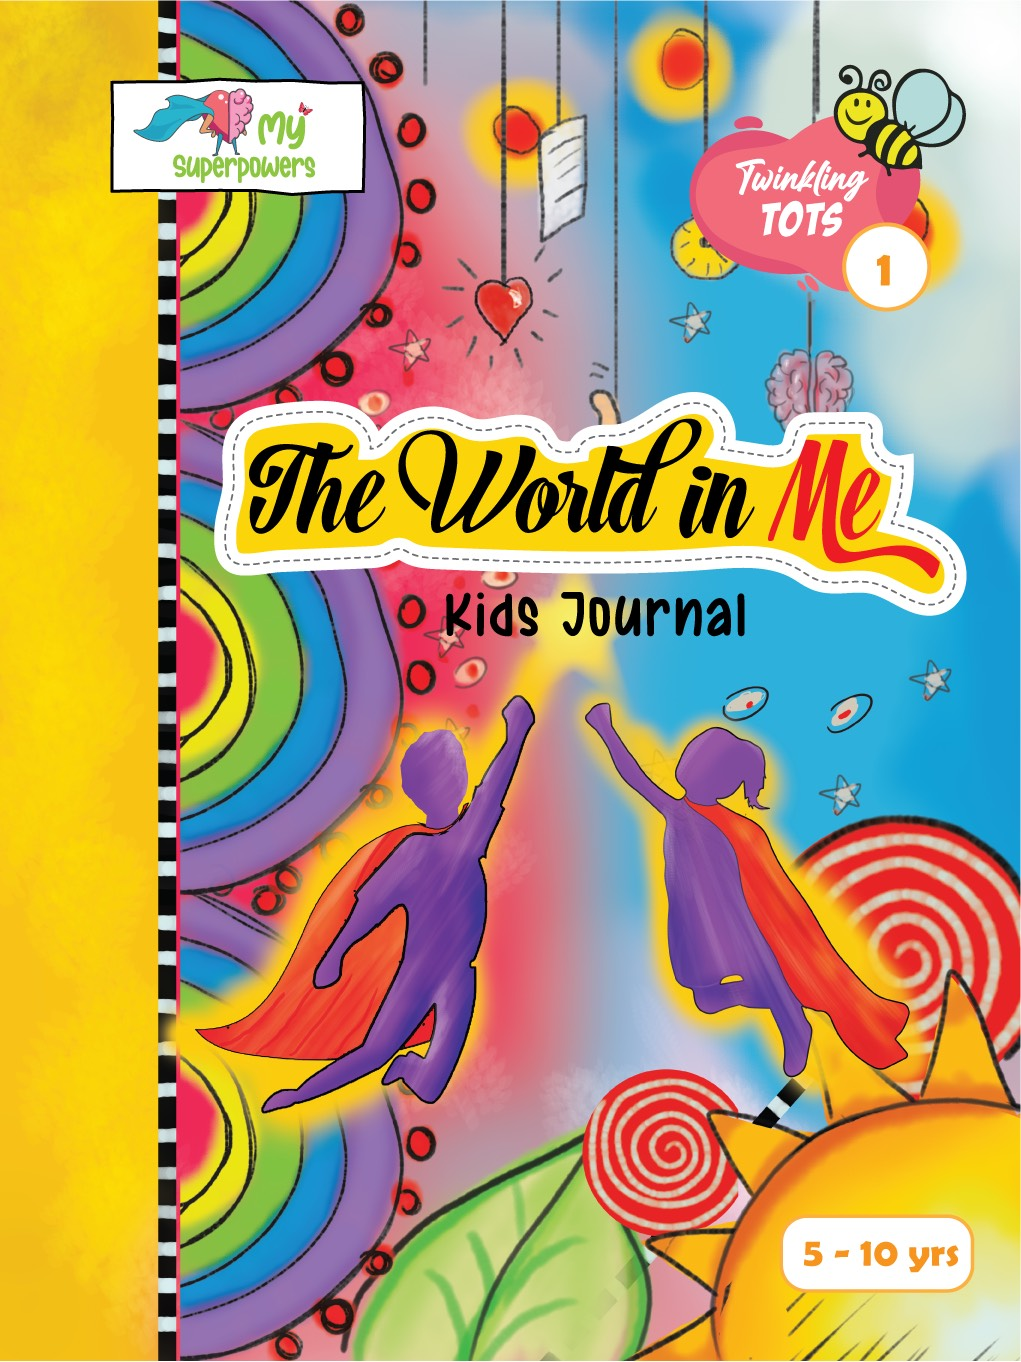 The World In Me - Journal for kids